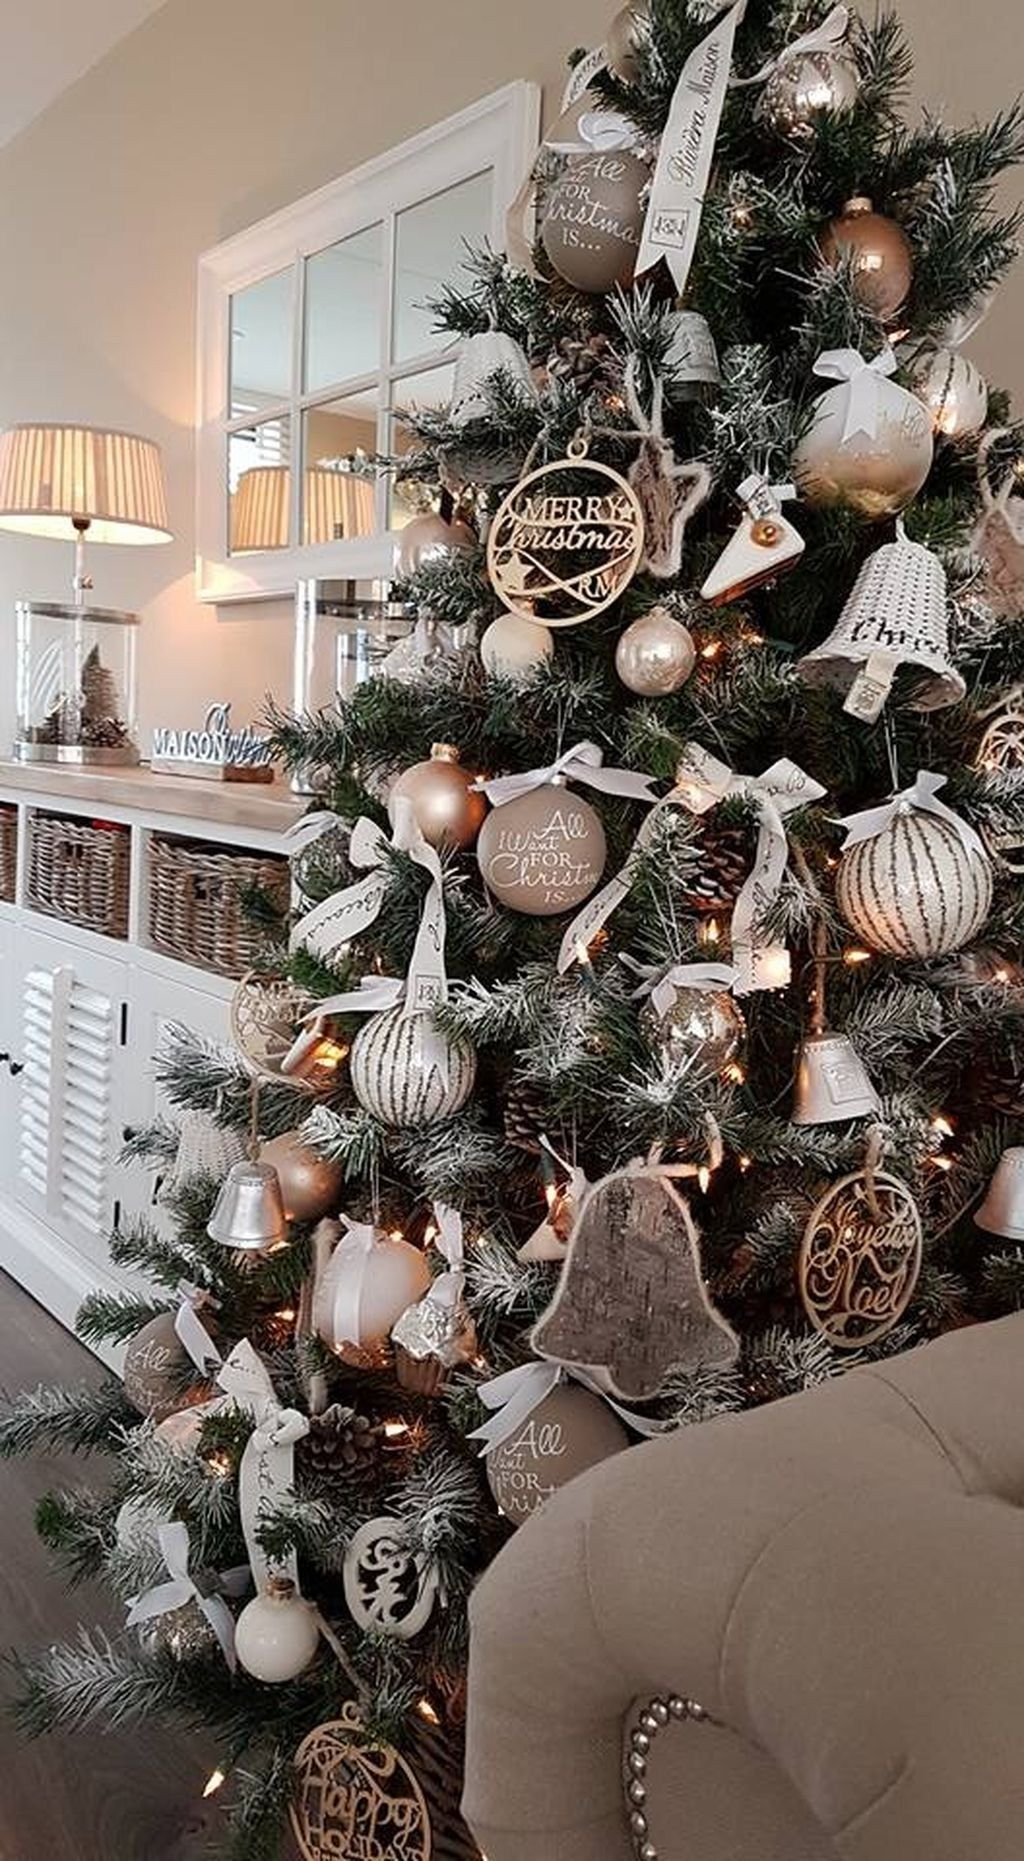 Inspiring Rustic Christmas Tree Decoration Ideas For Cheerful Day 09 Cool Christmas Trees Christmas Decorations Rustic Tree Christmas Tree Inspiration